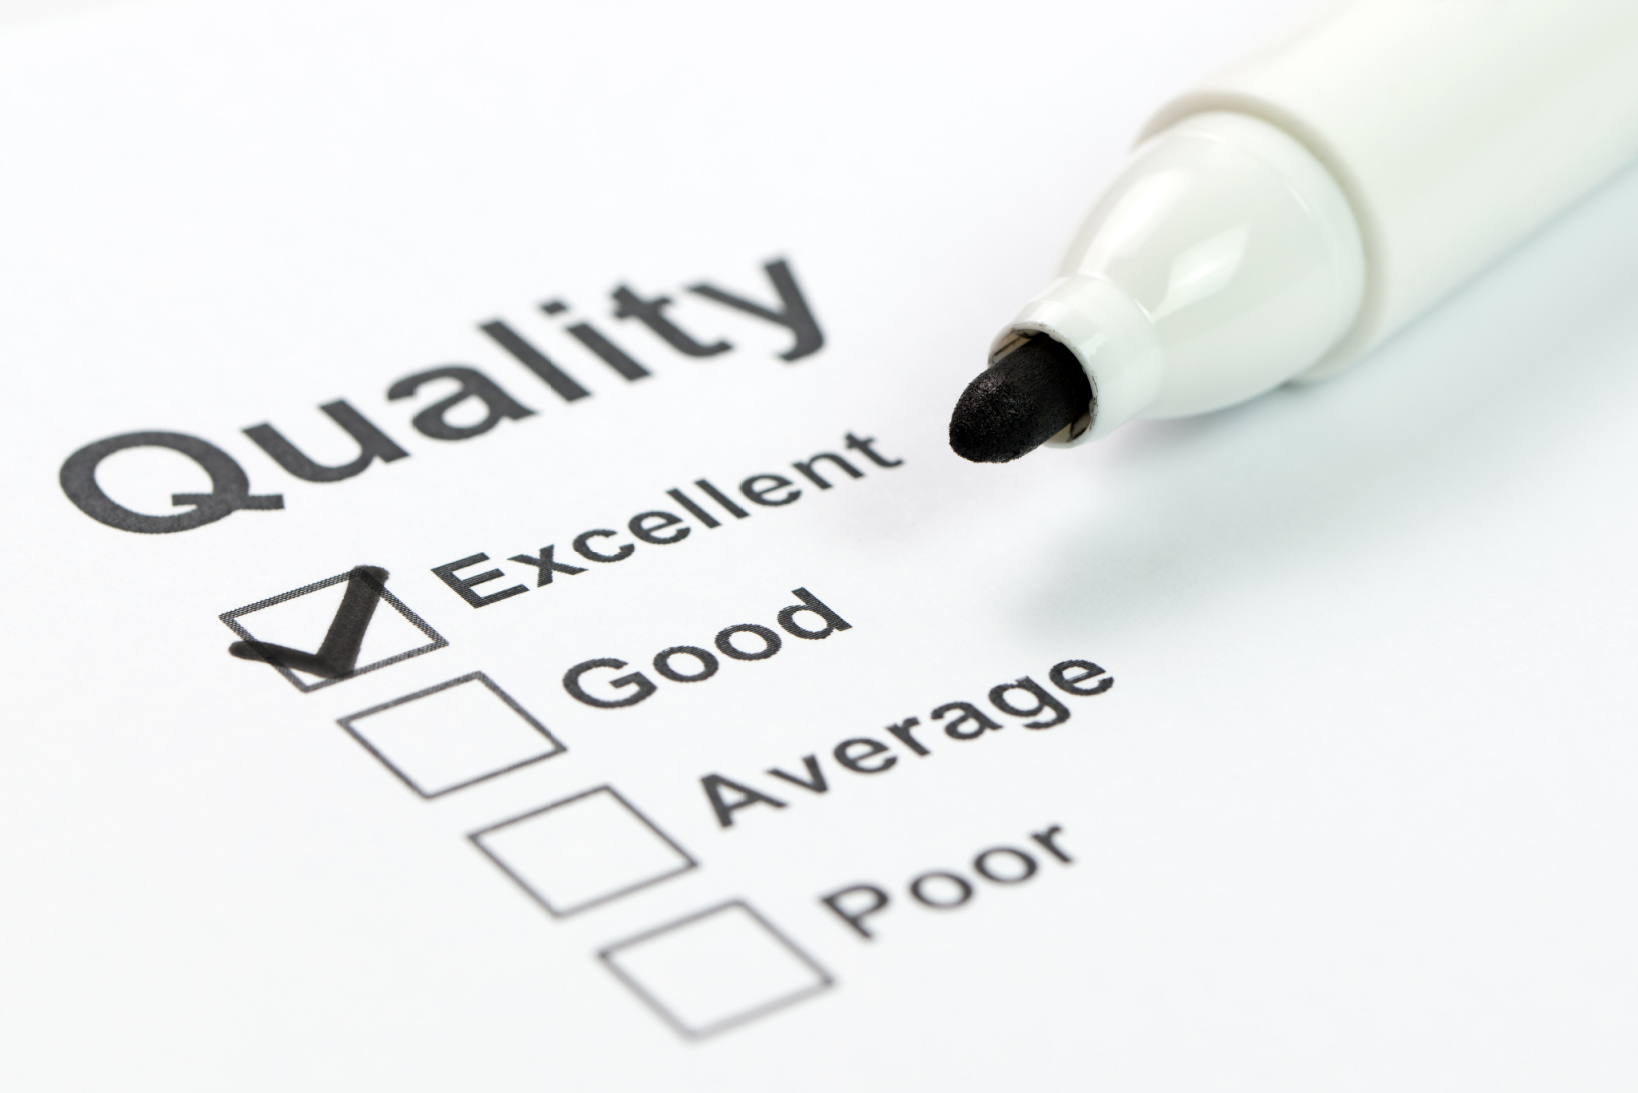 To get good reviews on Amazon, you need to sell products of the highest quality